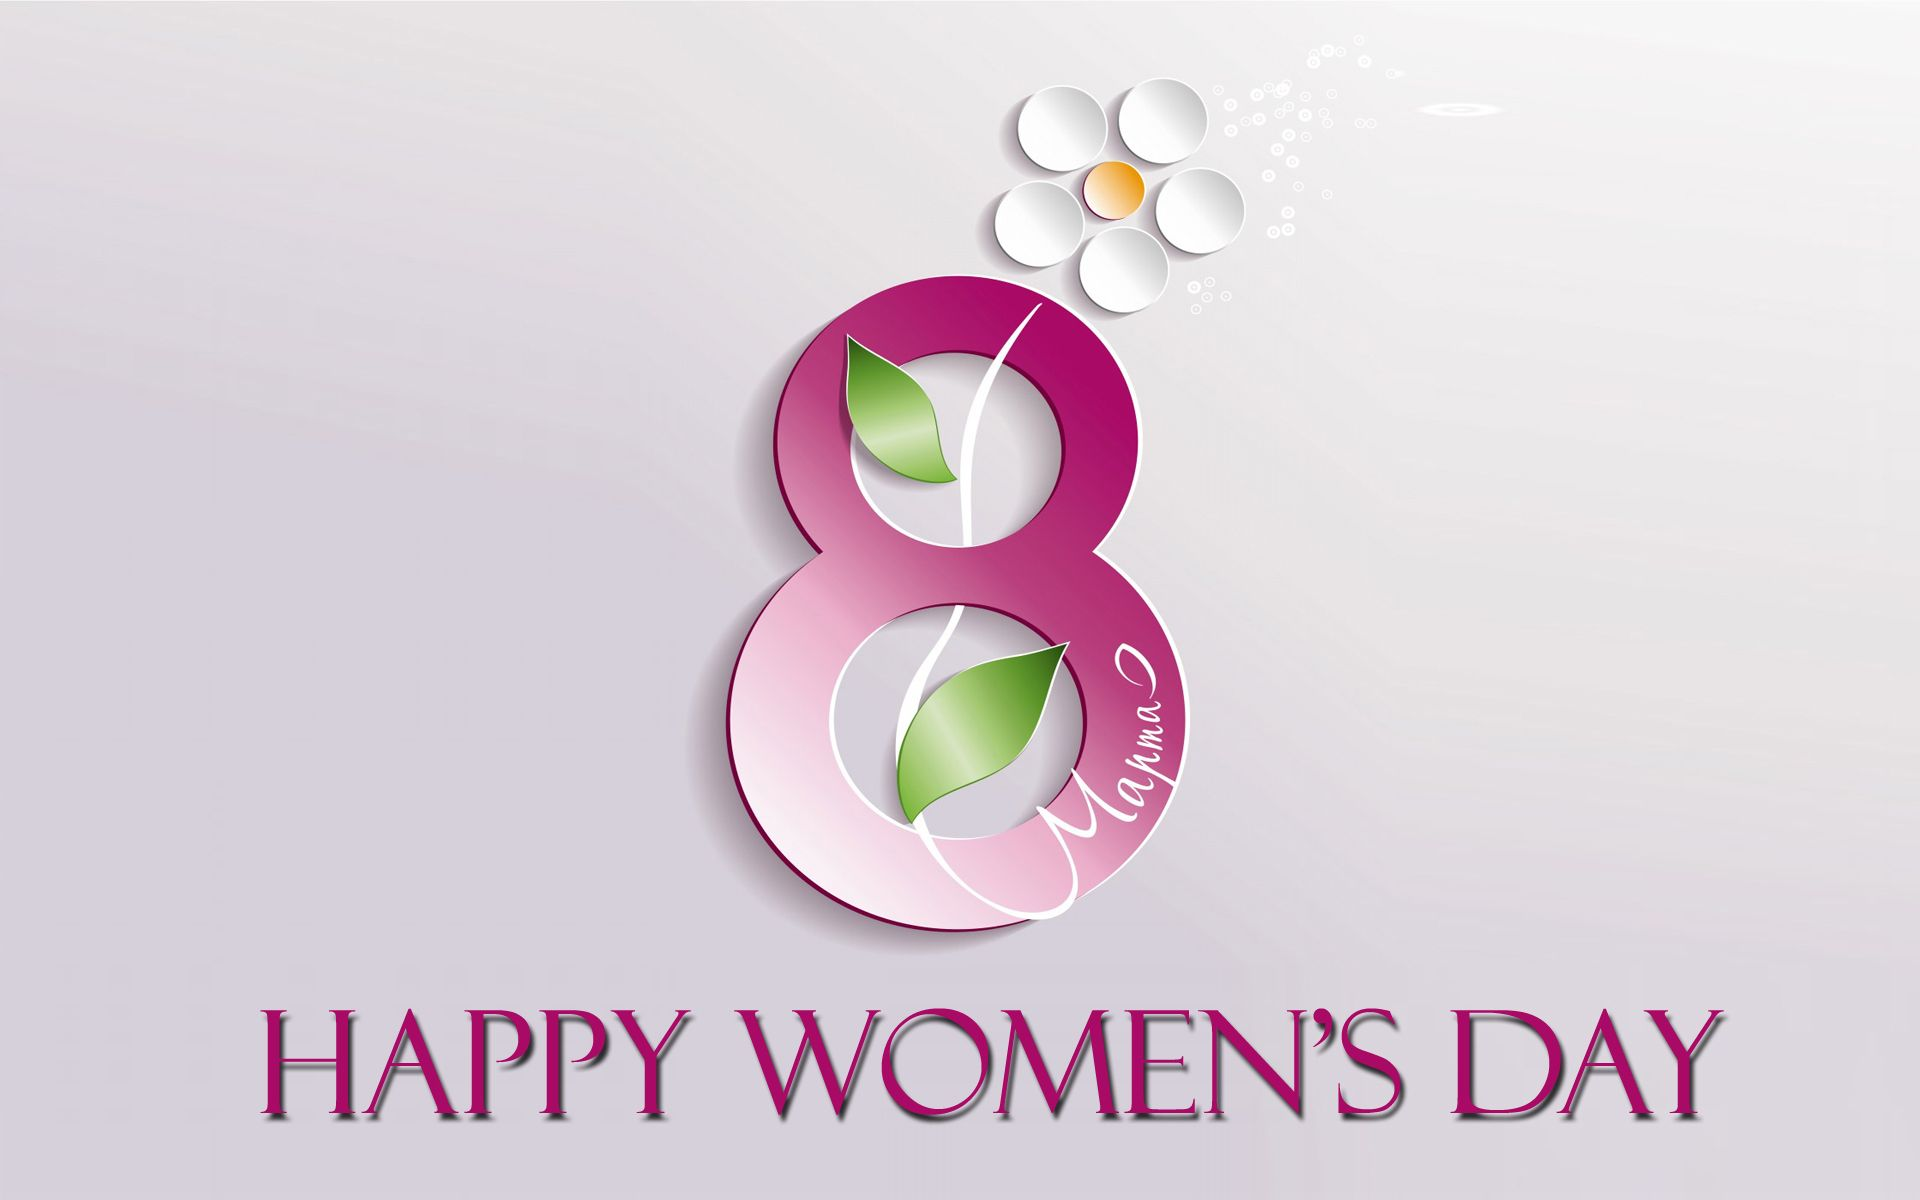 International Women s Day Wallpapers Download Find best latest